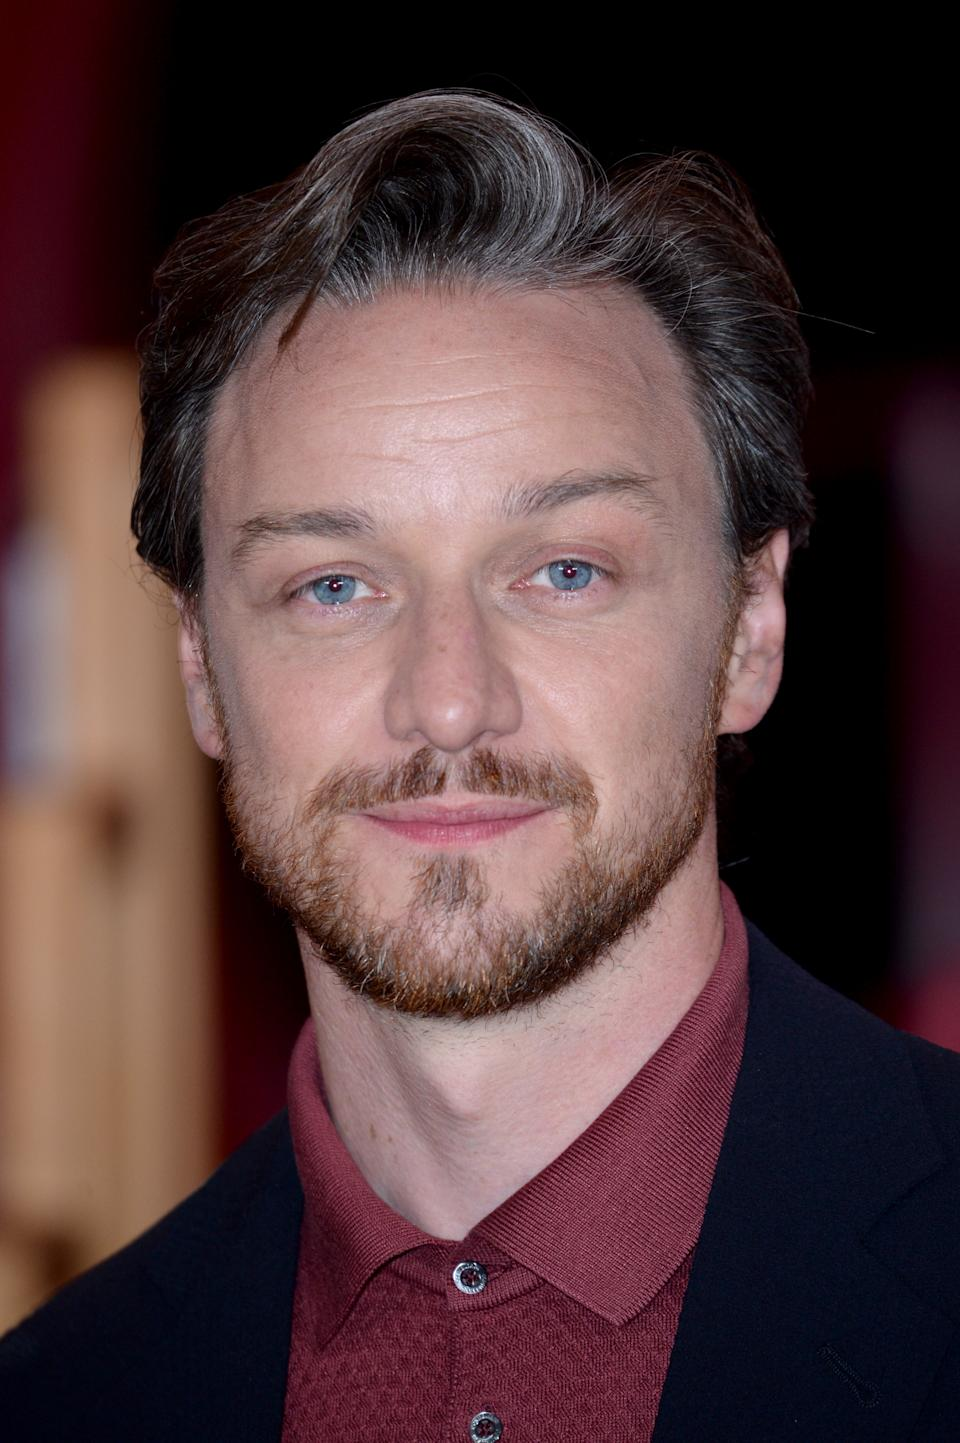 LONDON, ENGLAND - SEPTEMBER 02: James McAvoy attends the